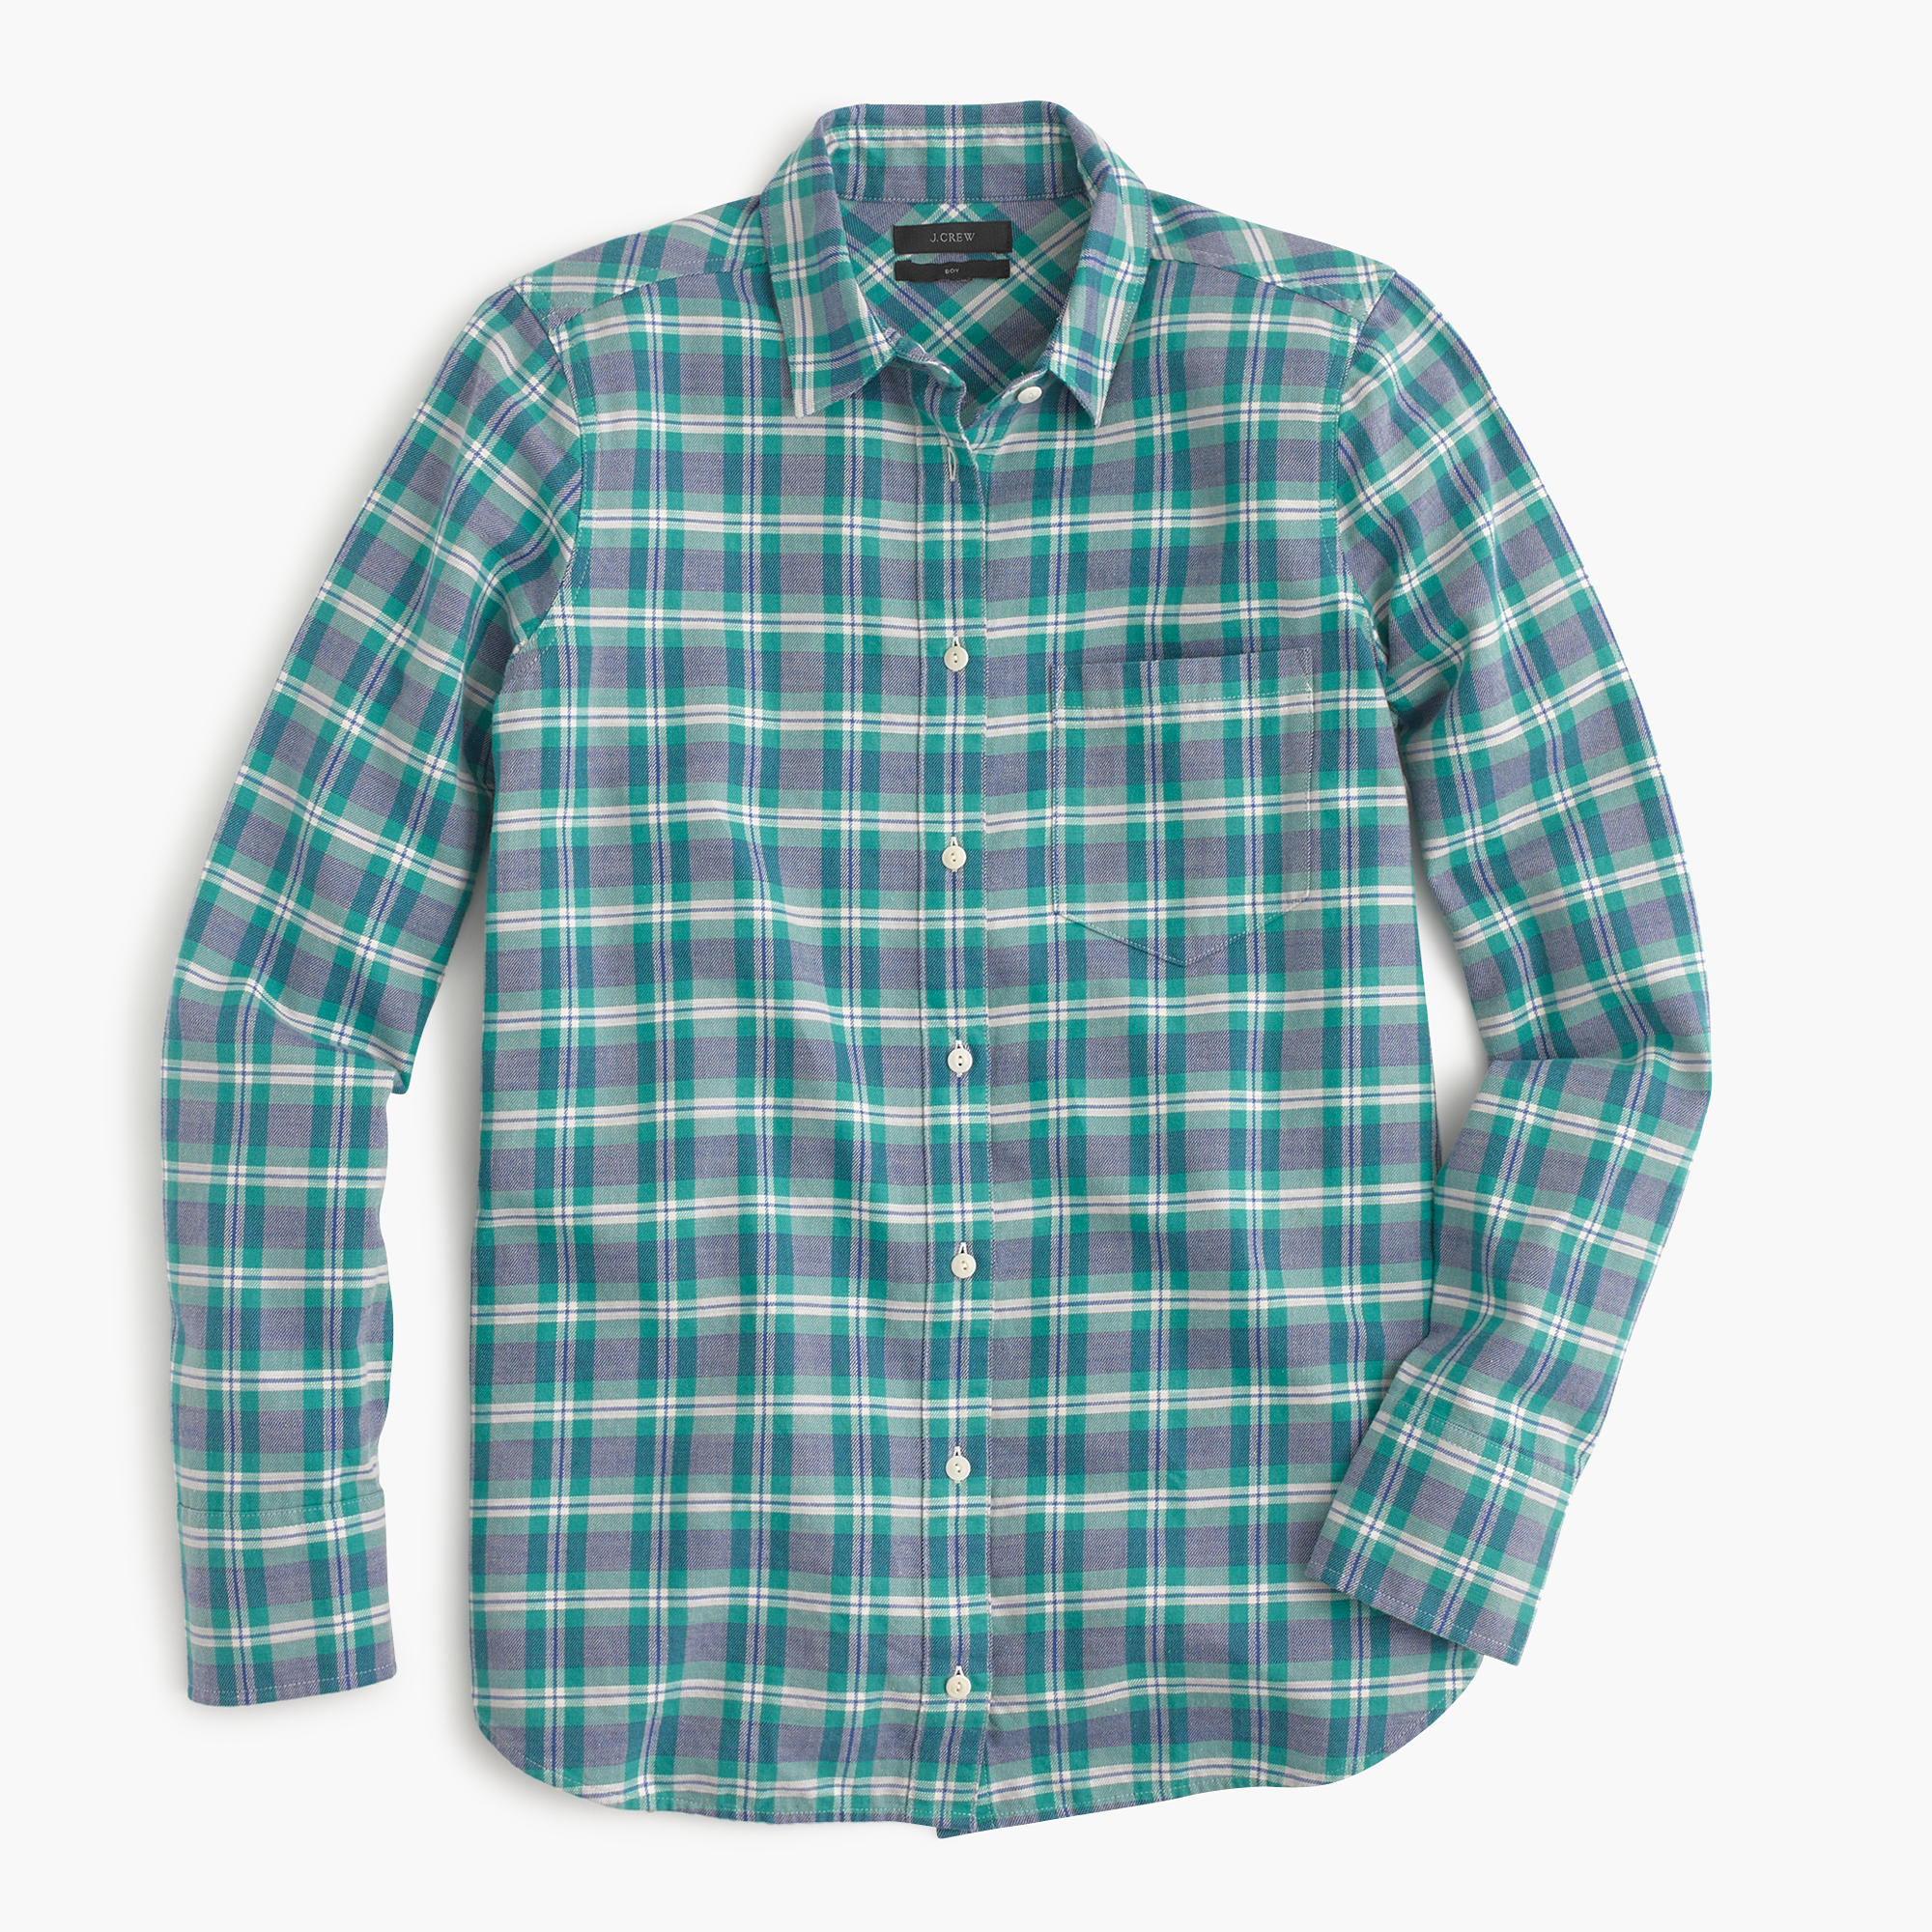 Boy shirt in green and blue plaid j crew for Blue and green tartan shirt